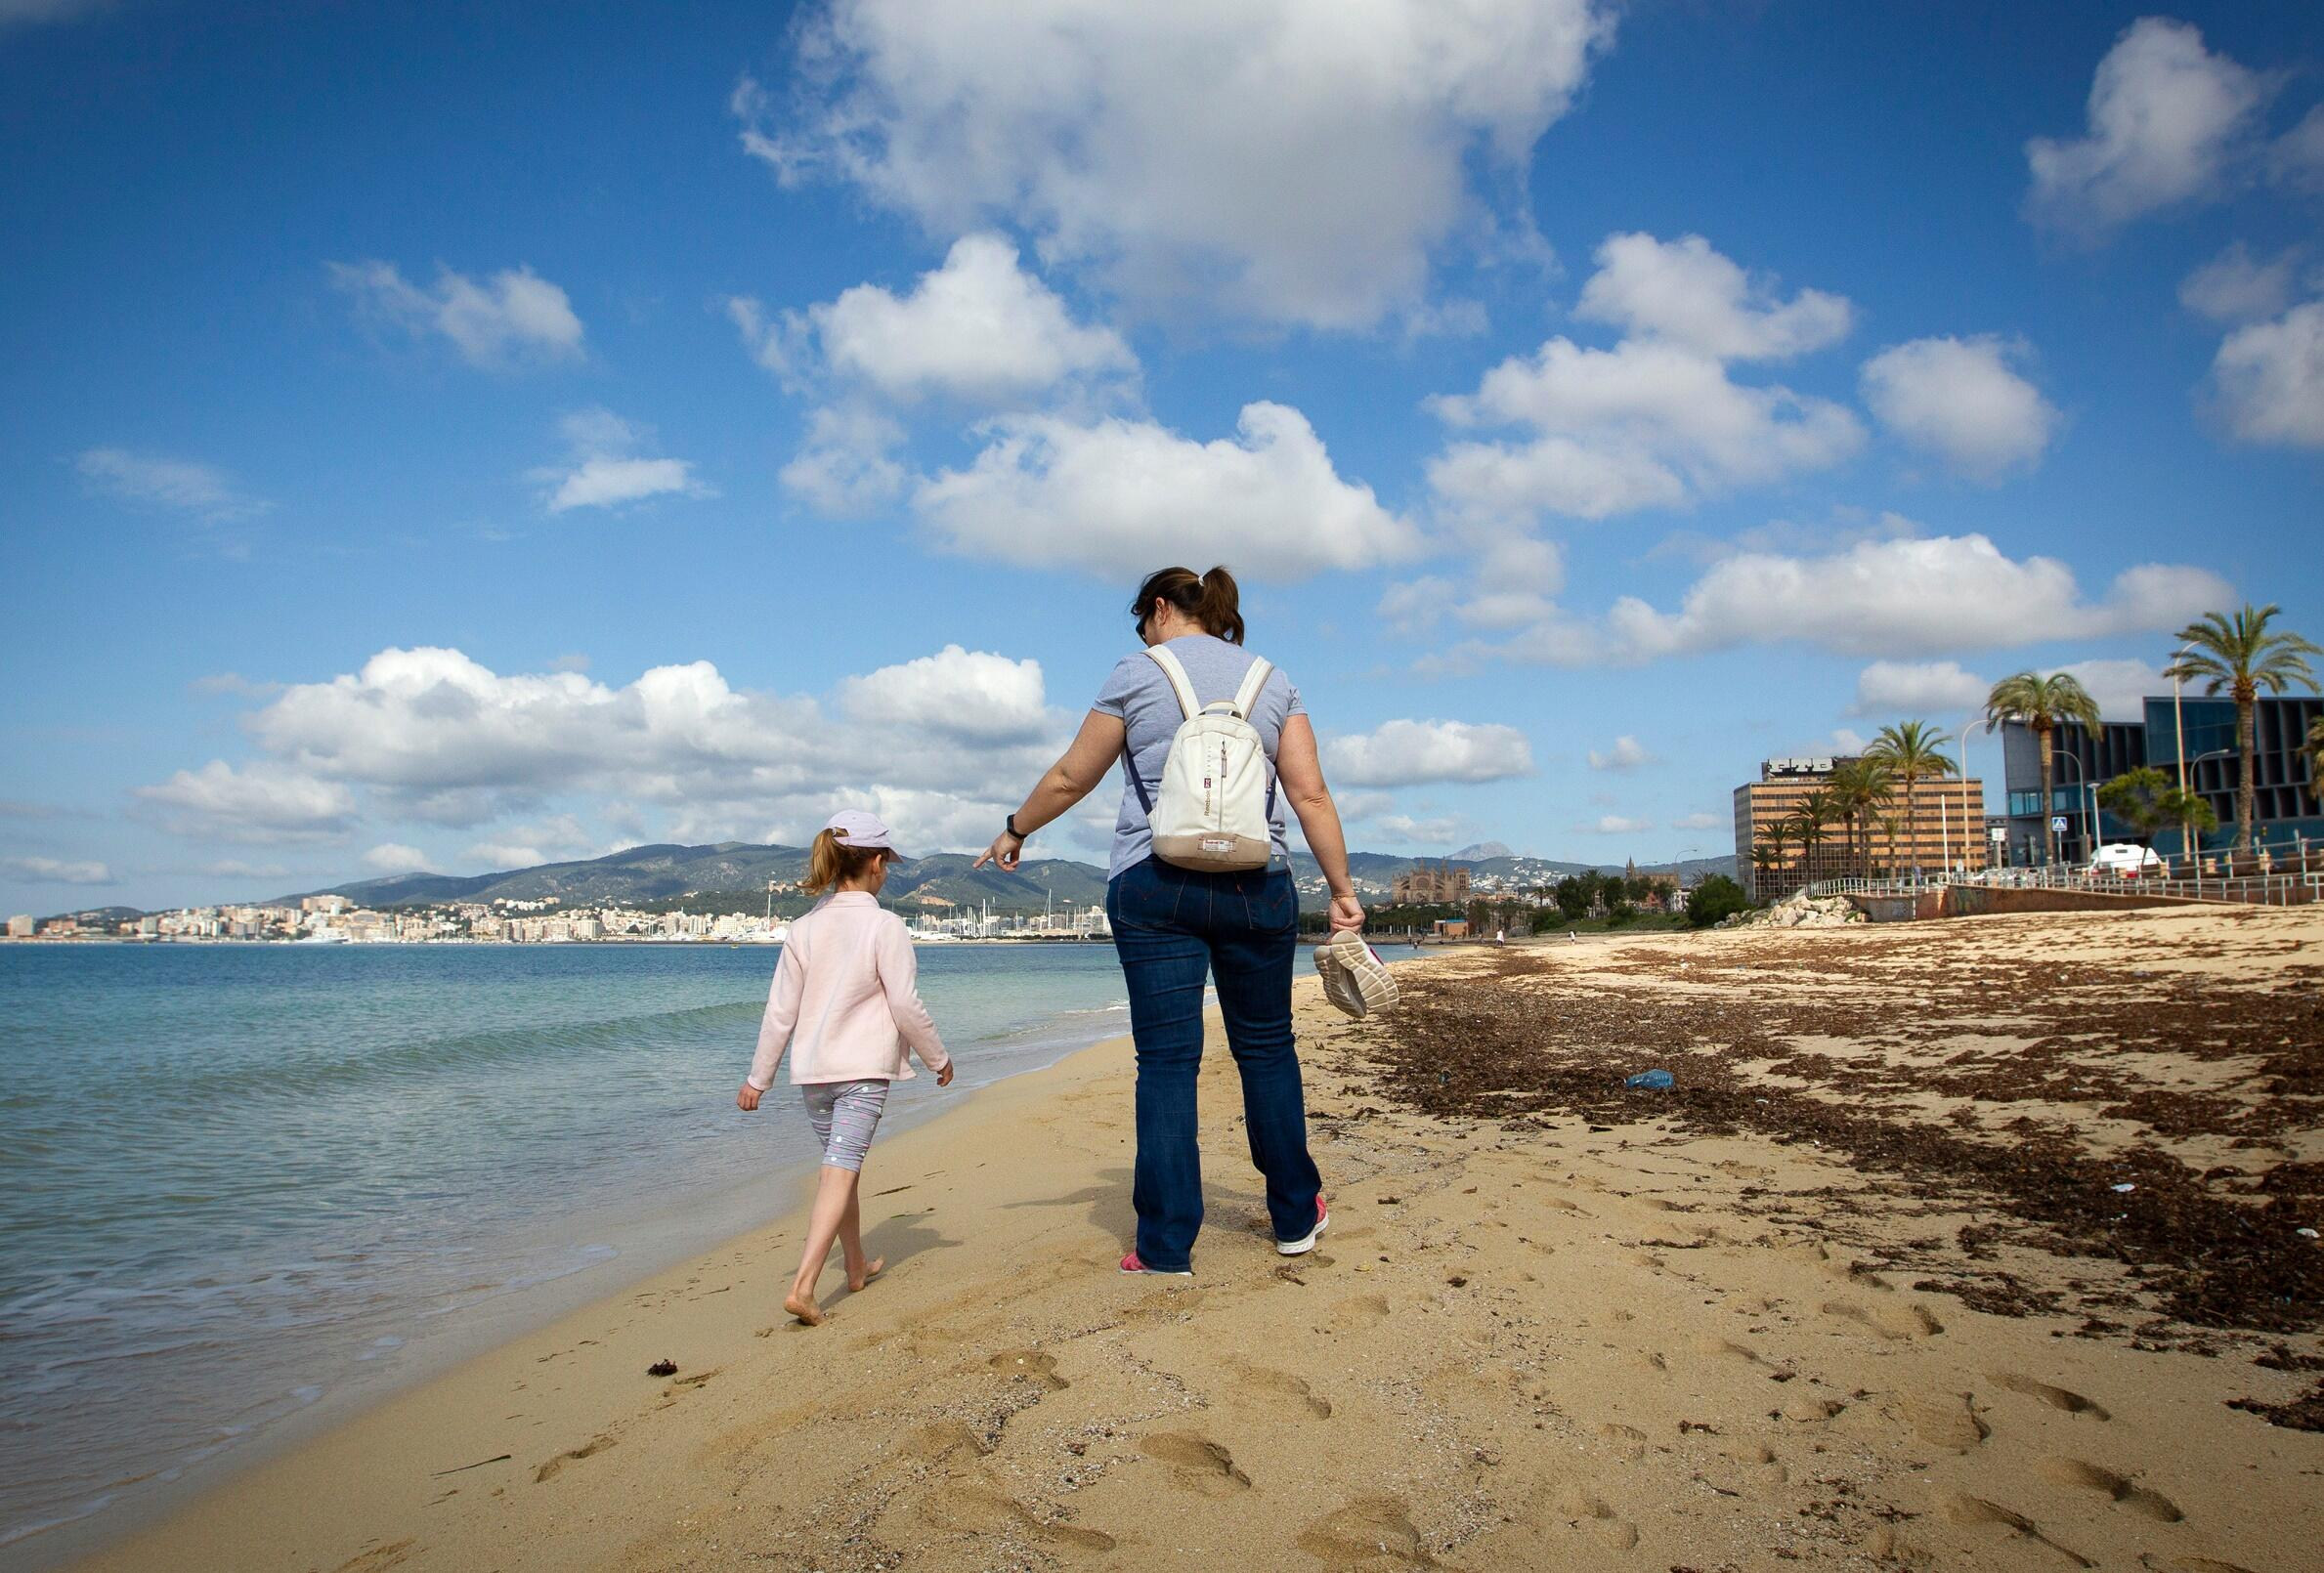 Mother and child on deserted beach of Spain's Palma de Mallorca, on 26 April, where many German tourists own property.